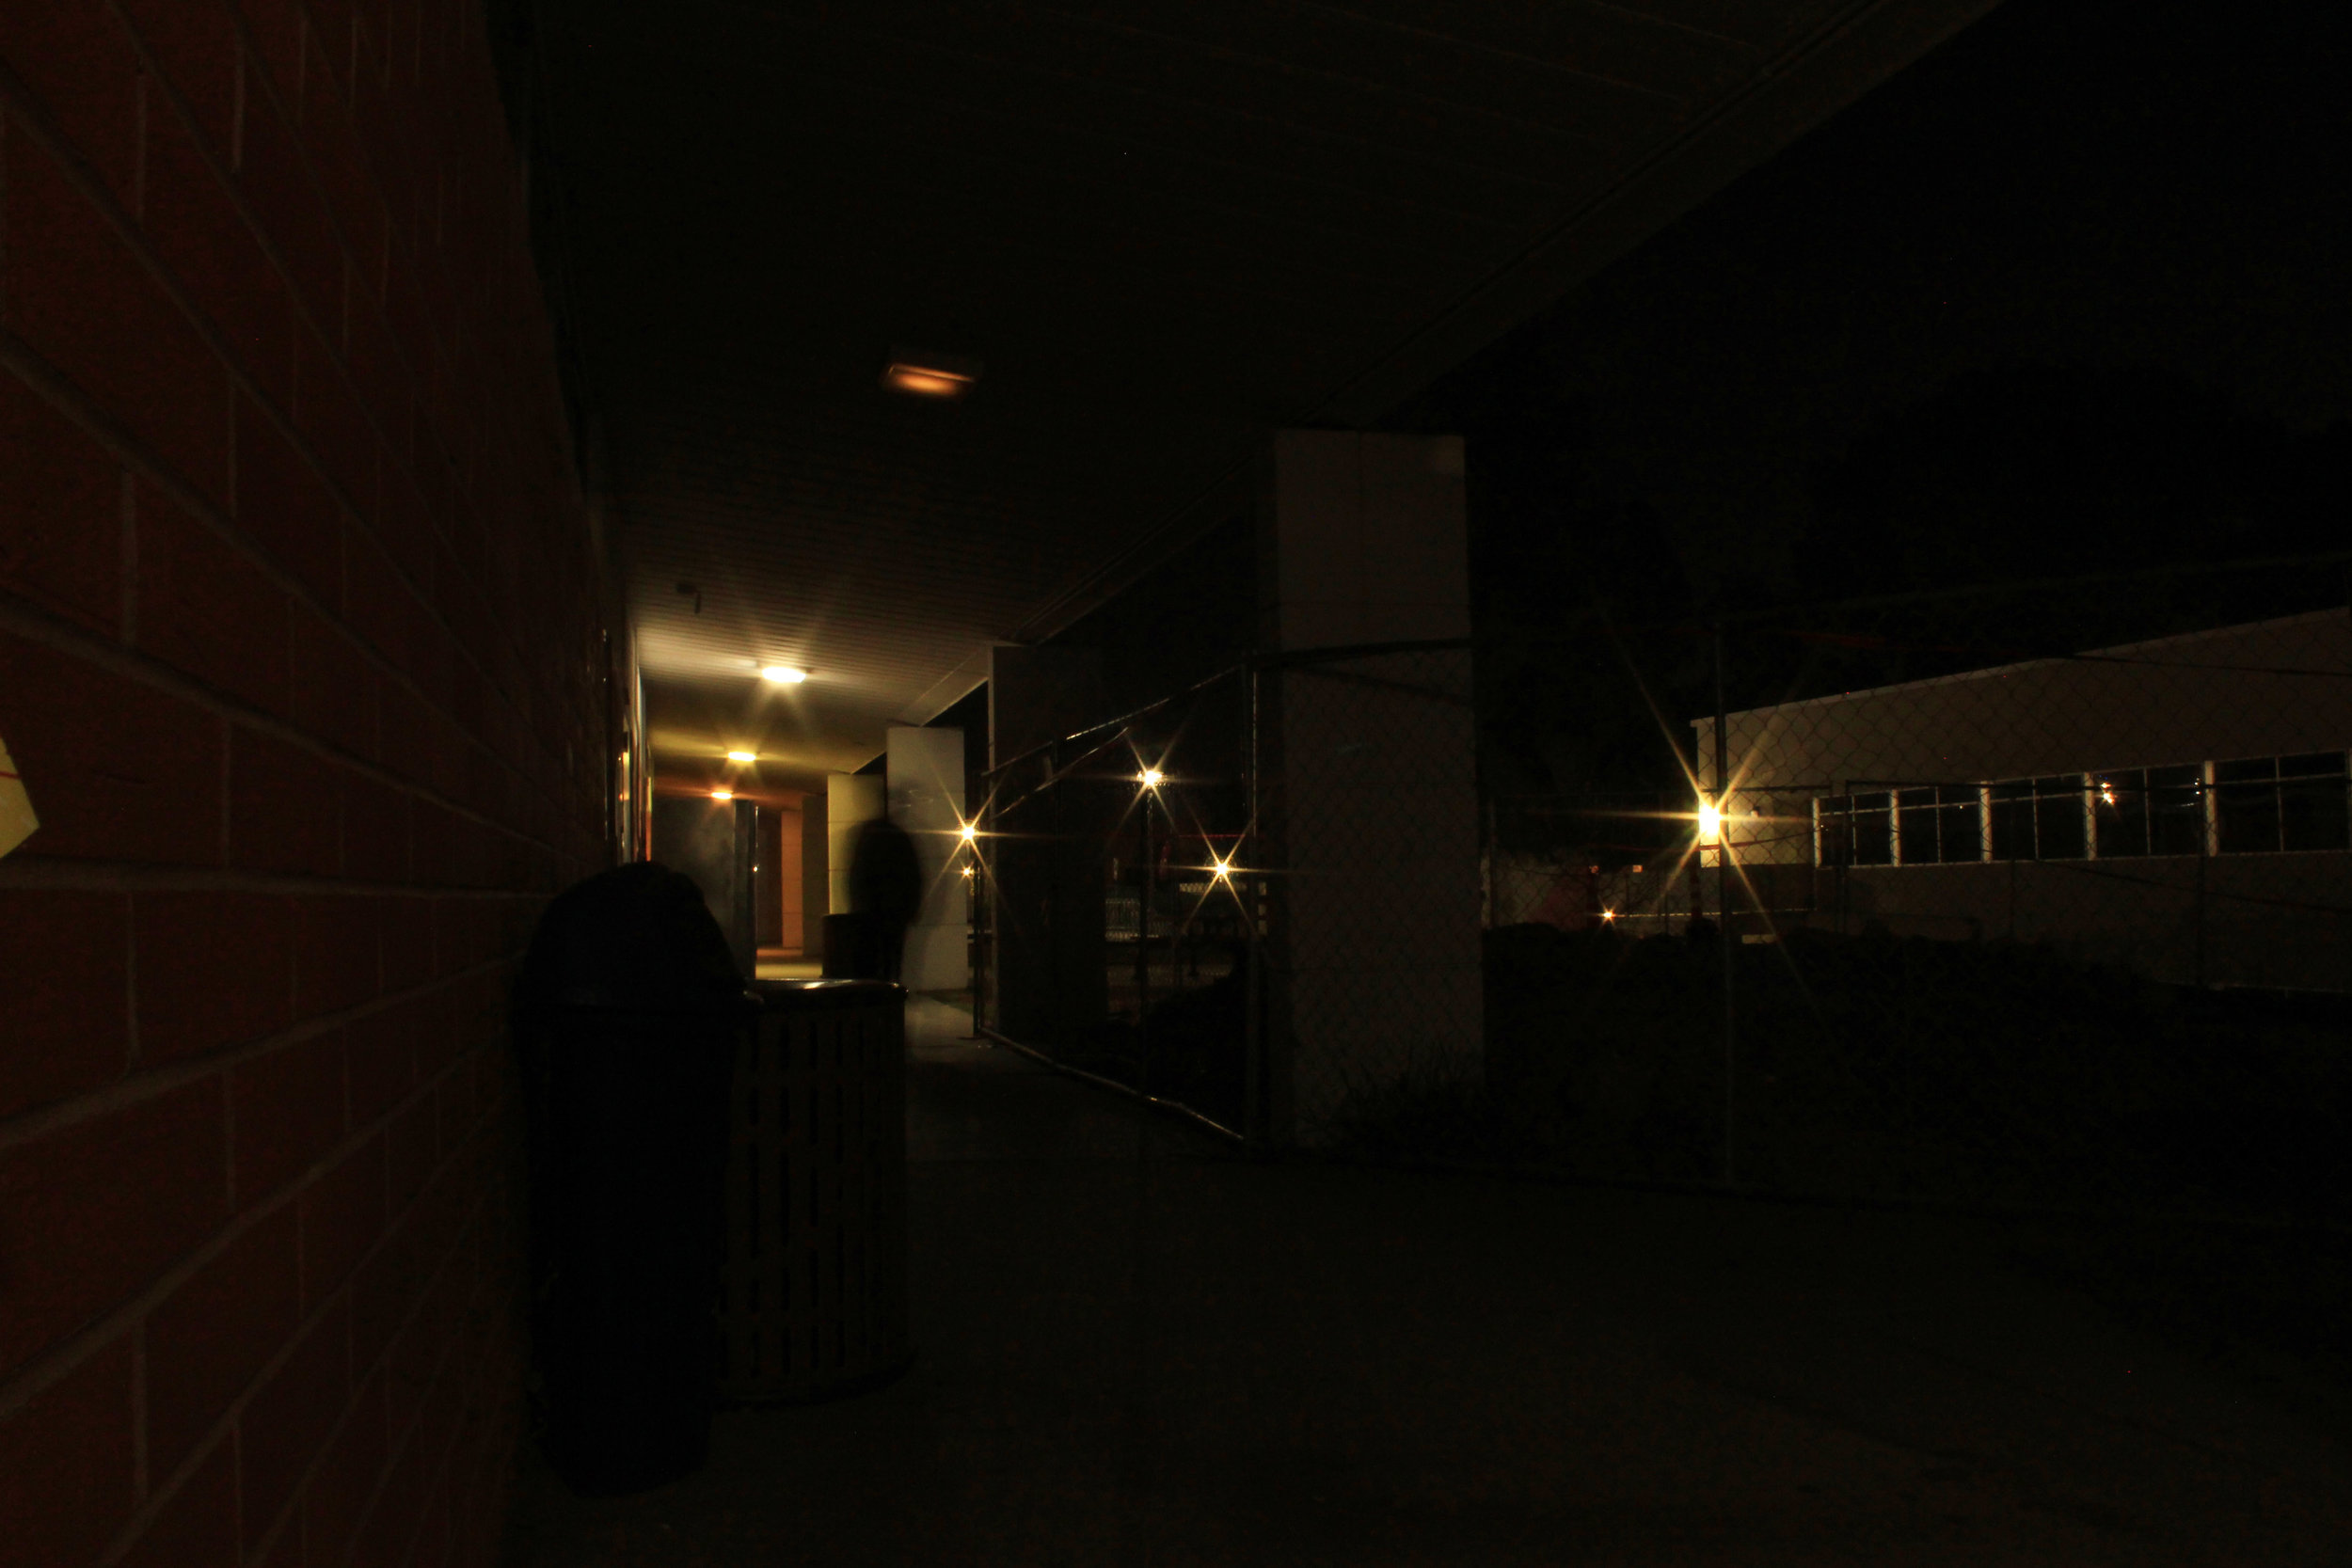 A flickering light creates an intensely ominous atmosphere at Chaffey college.